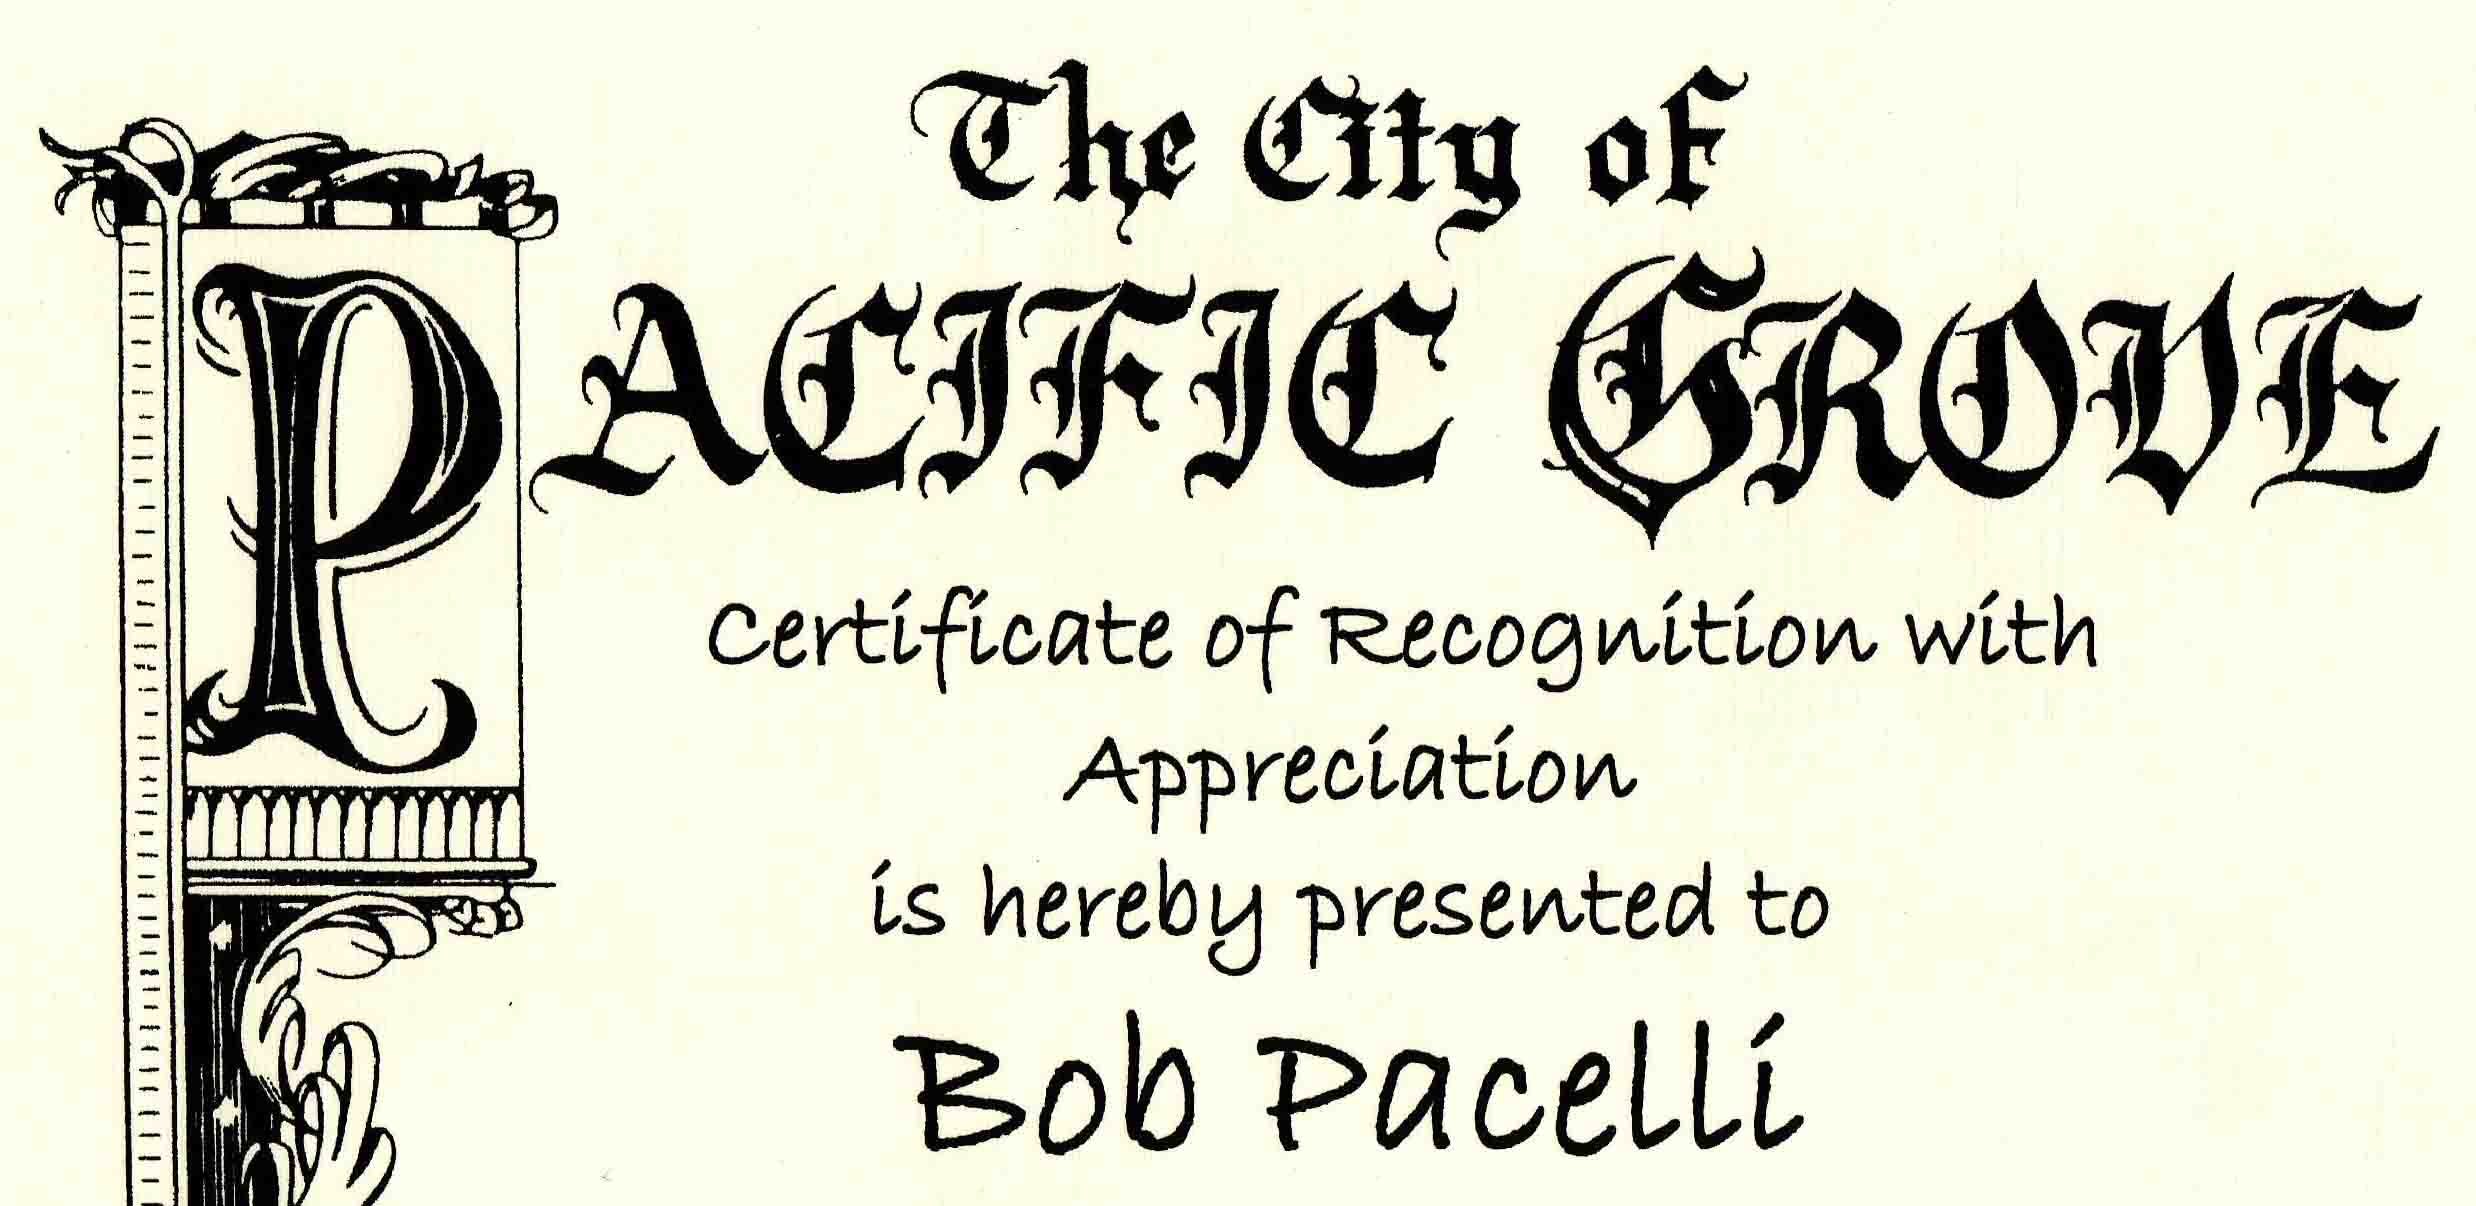 Robert Pacelli's Award from the City of Pacific Grove - 2011